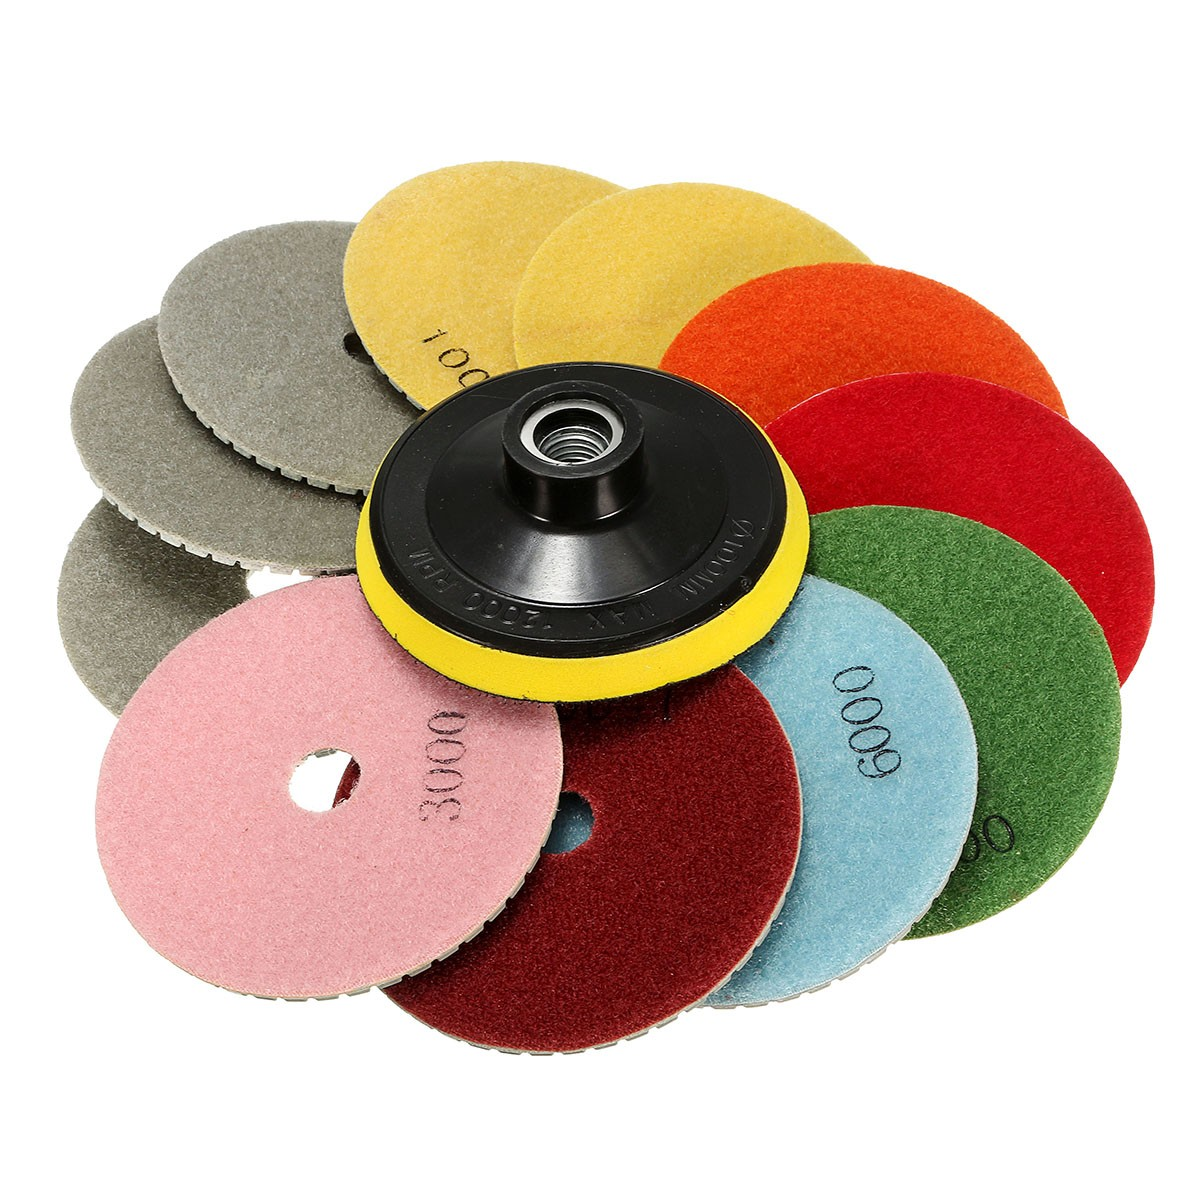 12PCS/Set 4 Inch Diamond Polishing Pads Wet/Dry  Kit Granite Concrete Marble Polishing